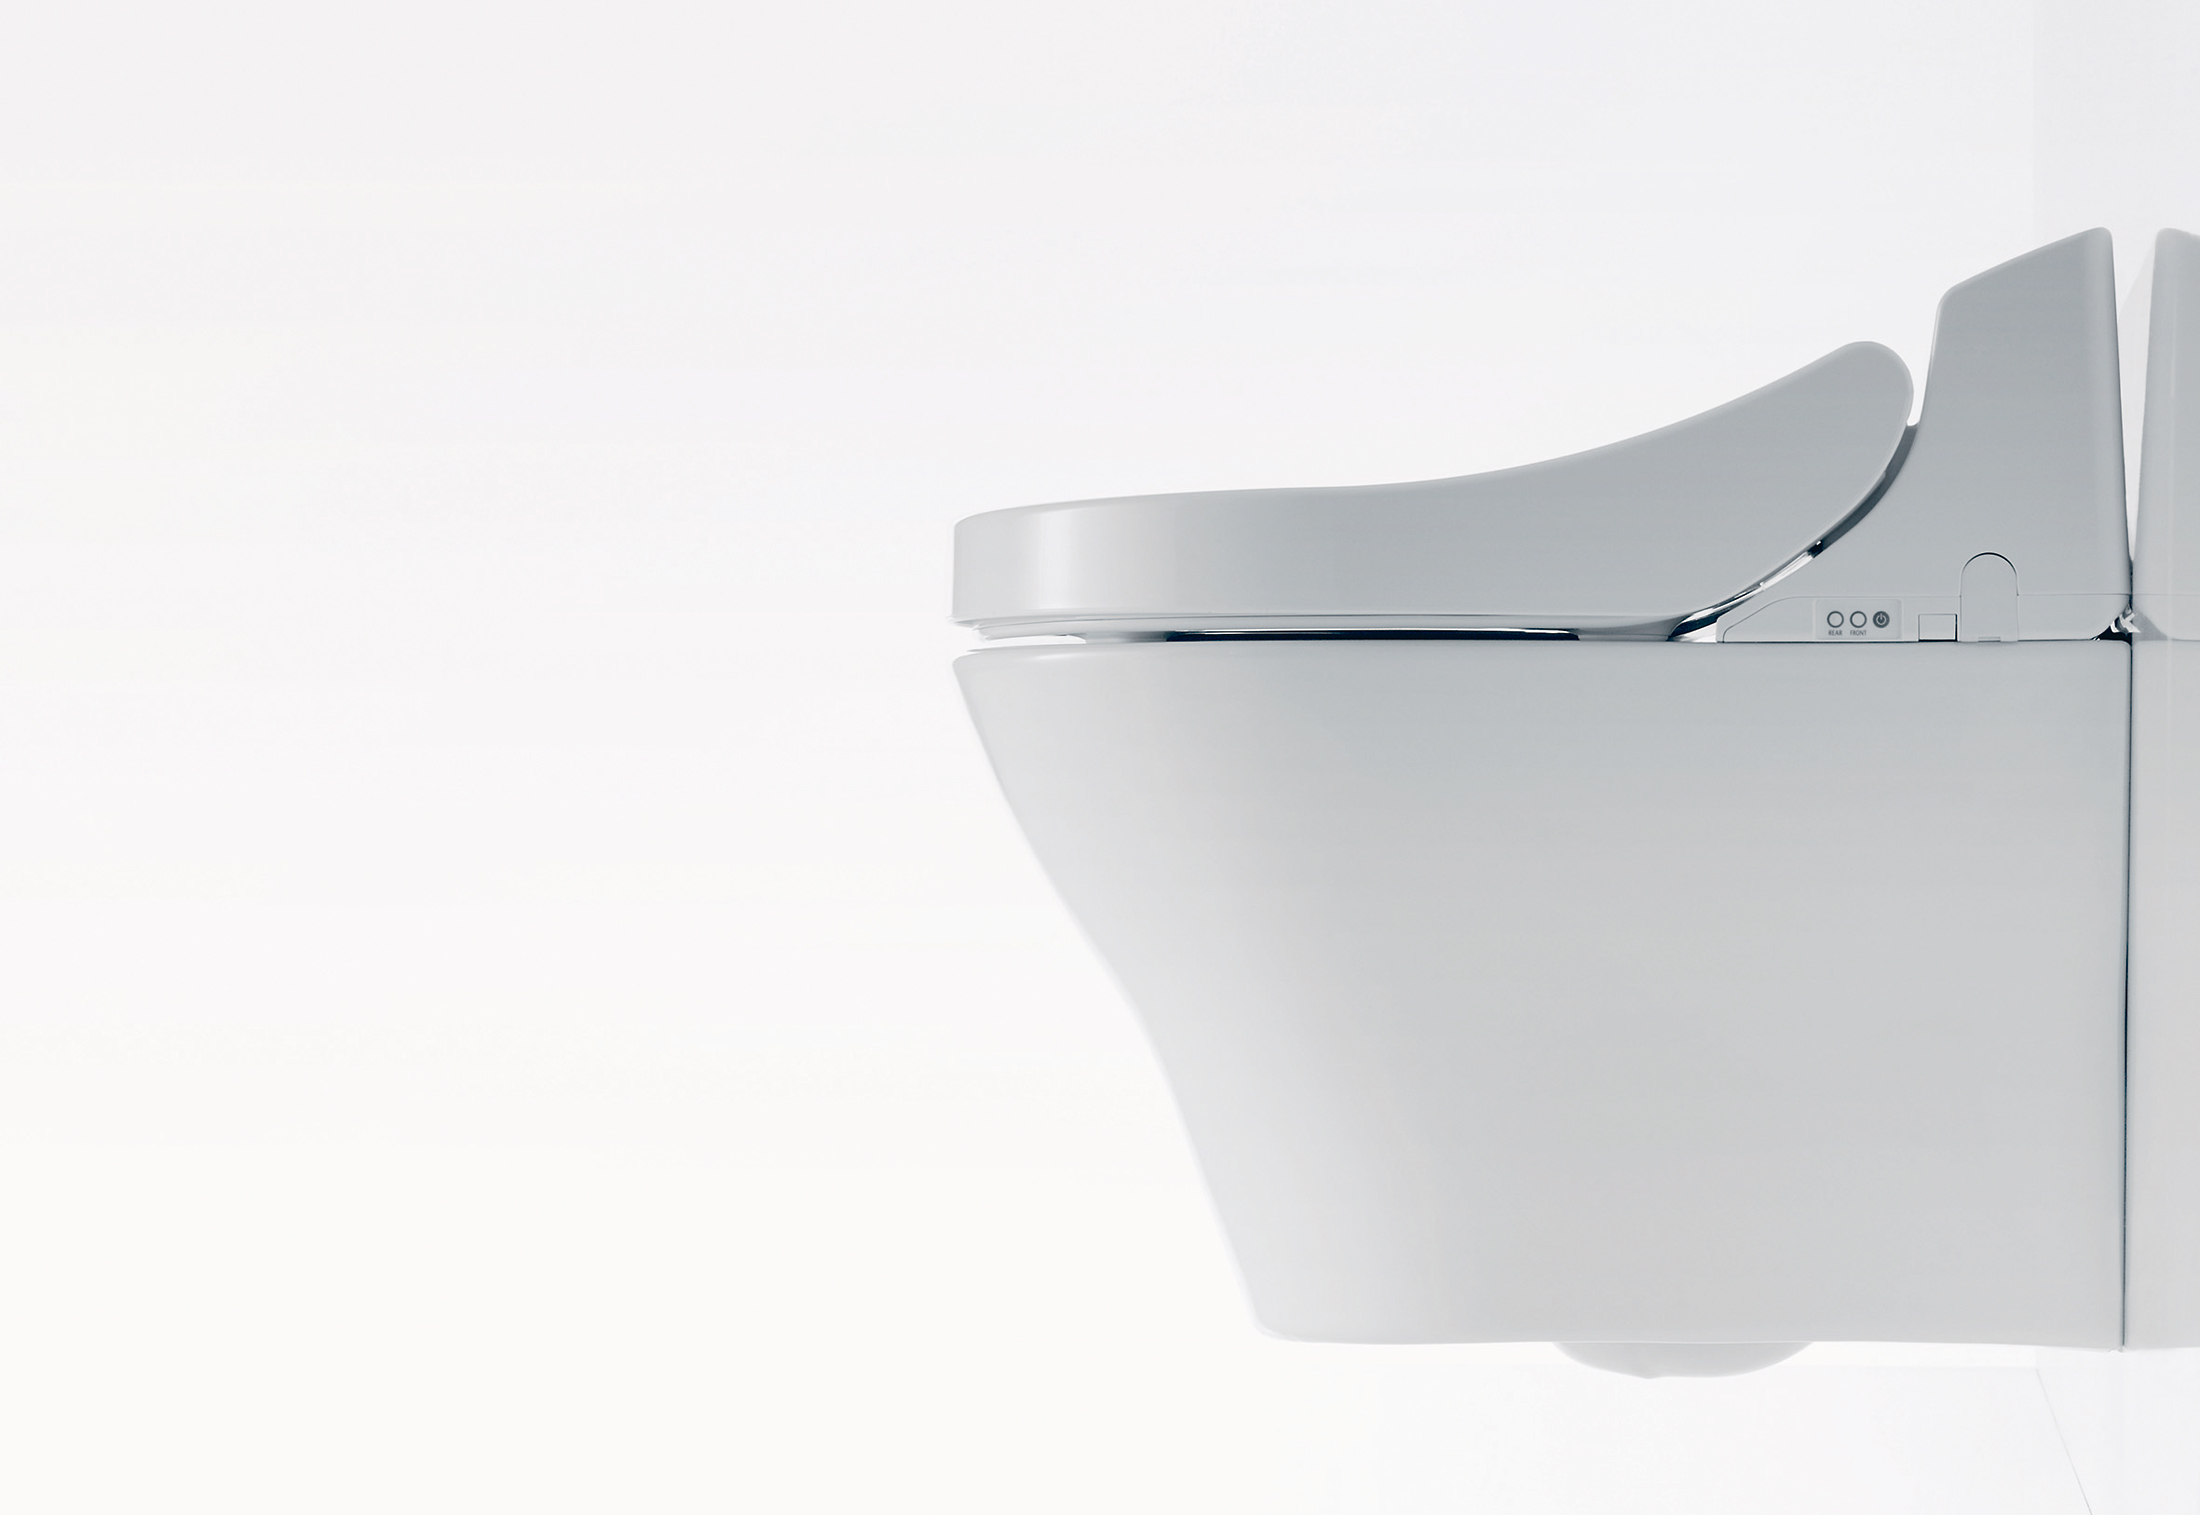 chic toto washlet GL by TOTO toilets design at STYLEPARK for bathroom furniture ideas